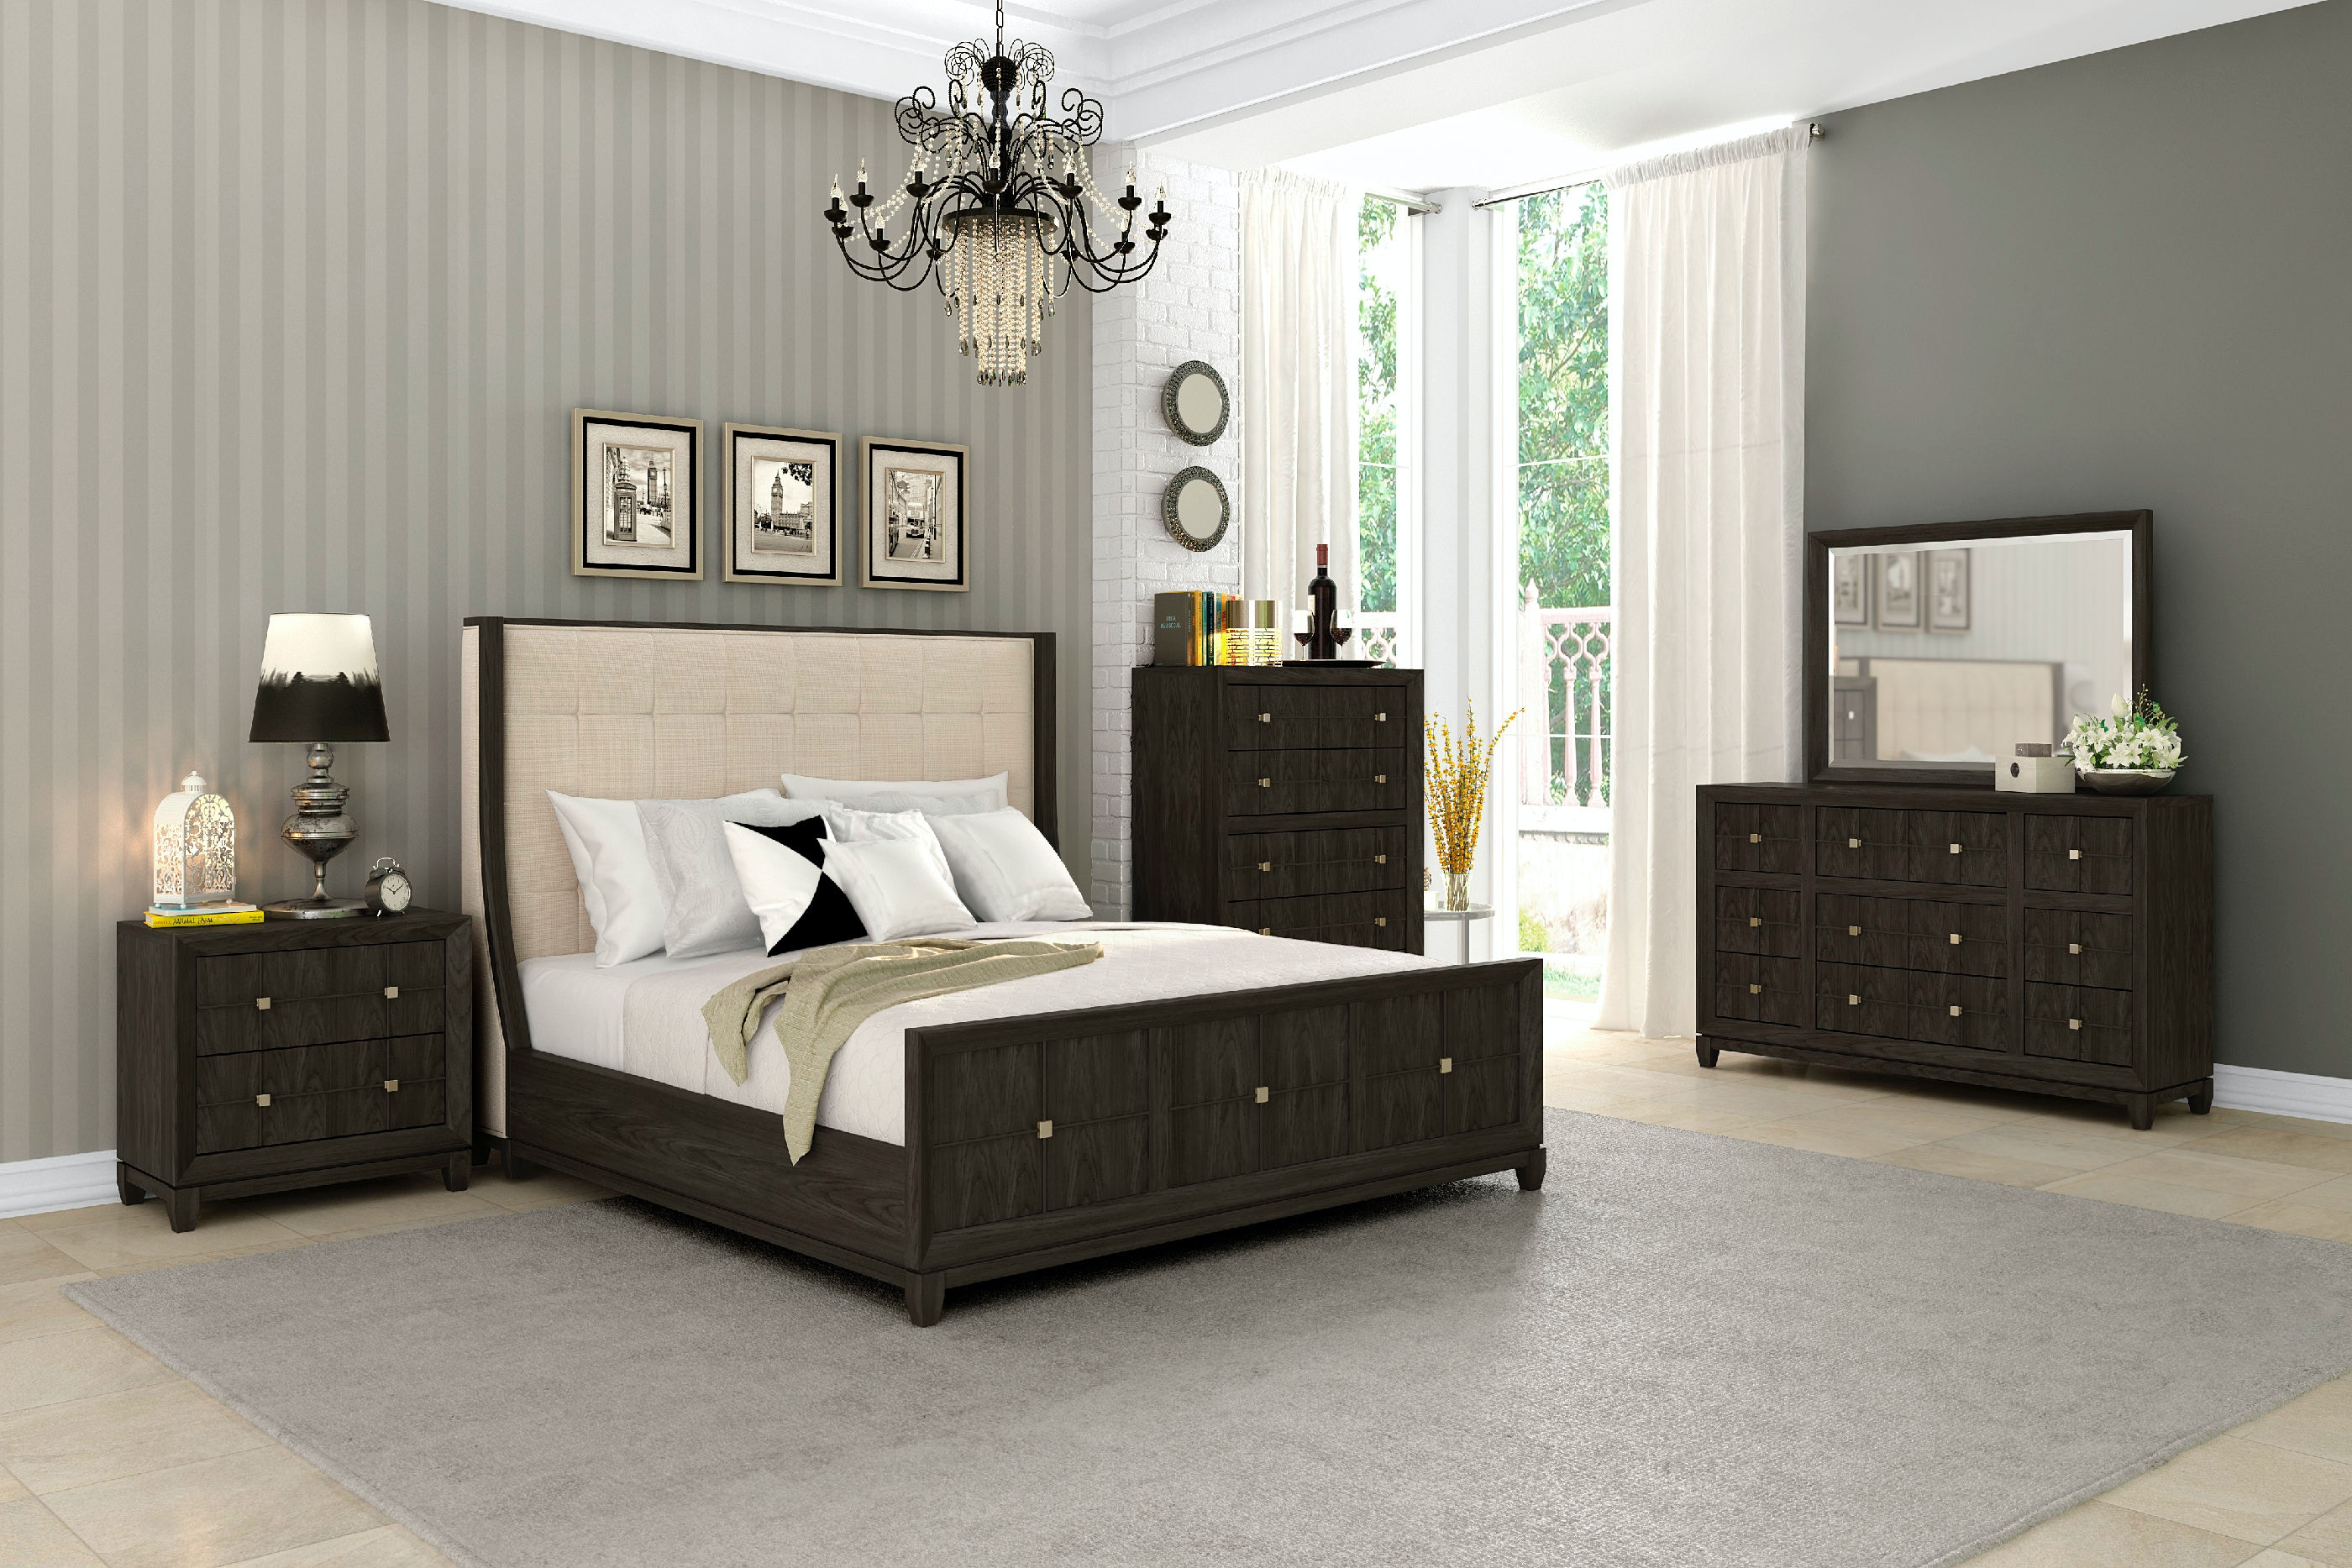 klaussner bedroom furniture klaussner international bedroom regency 645 bedroom 12038